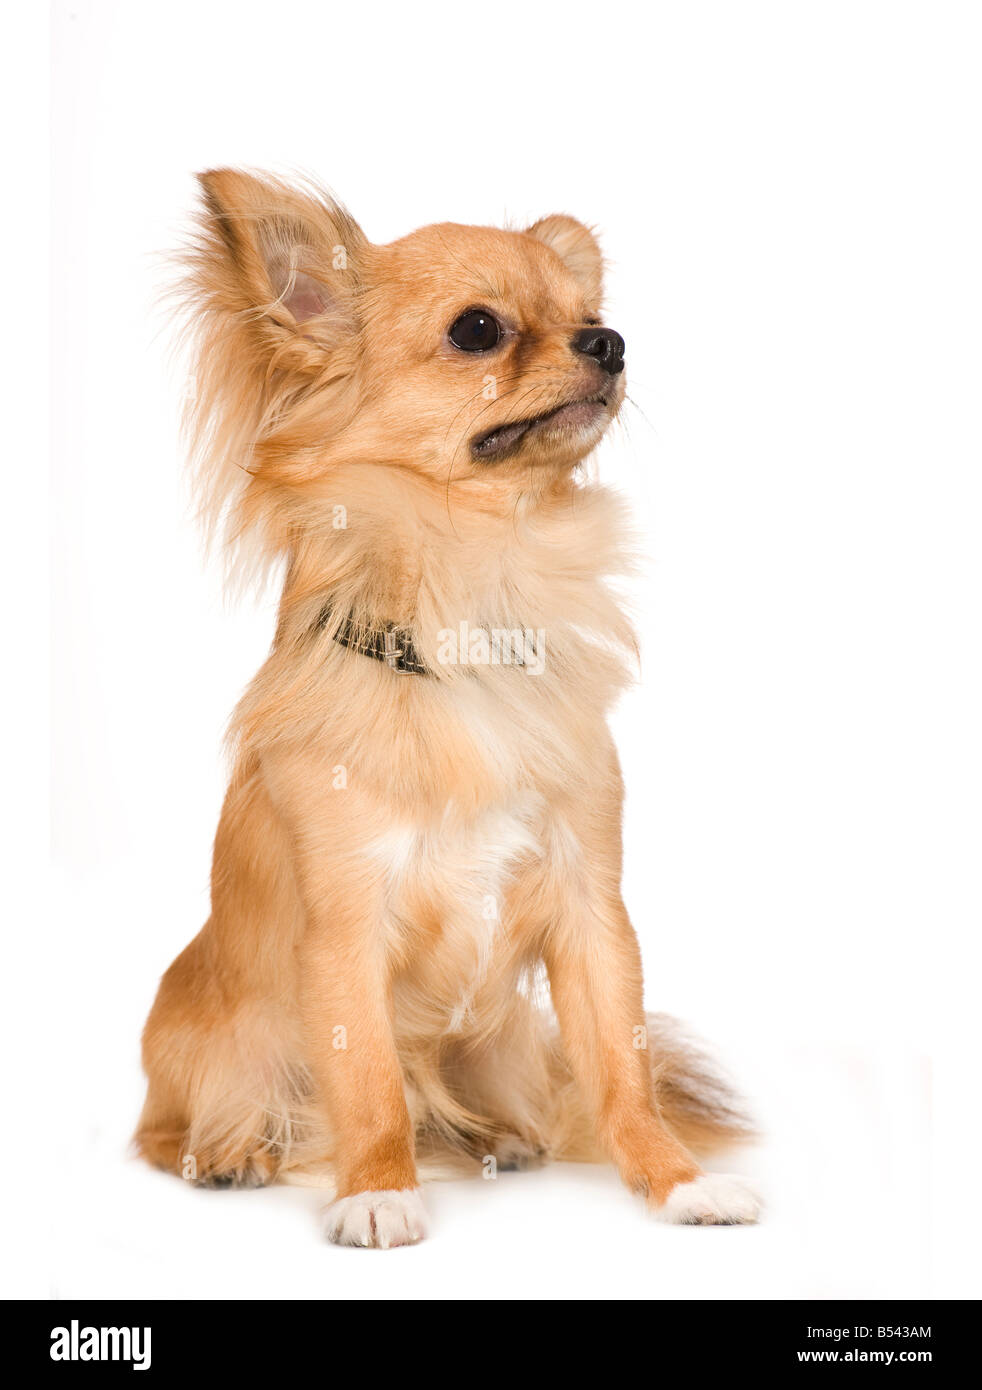 chihuahua 1 year in front of a white background - Stock Image